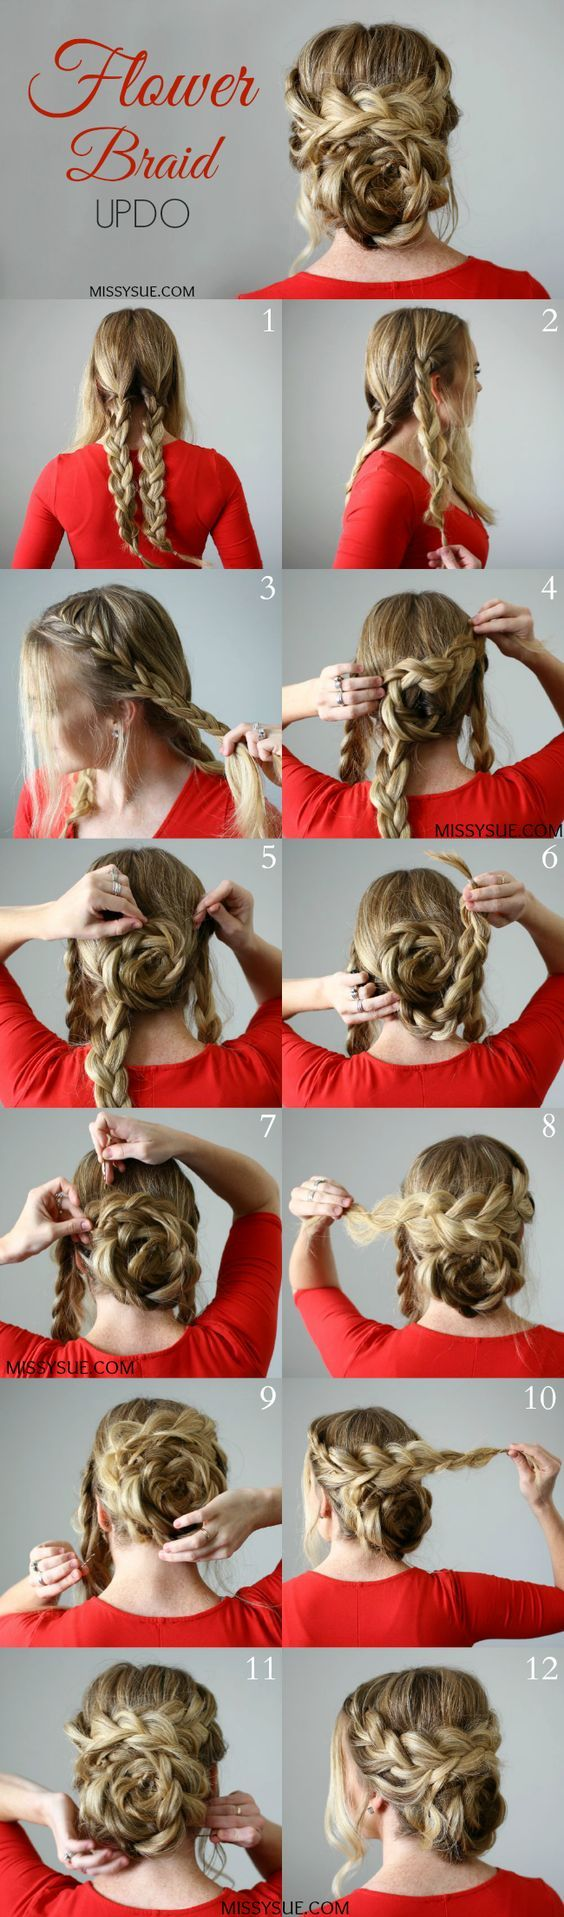 Flower Braid Updo Tutorial / http://www.himisspuff.com/easy-diy-braided-hairstyles-tutorials/79/